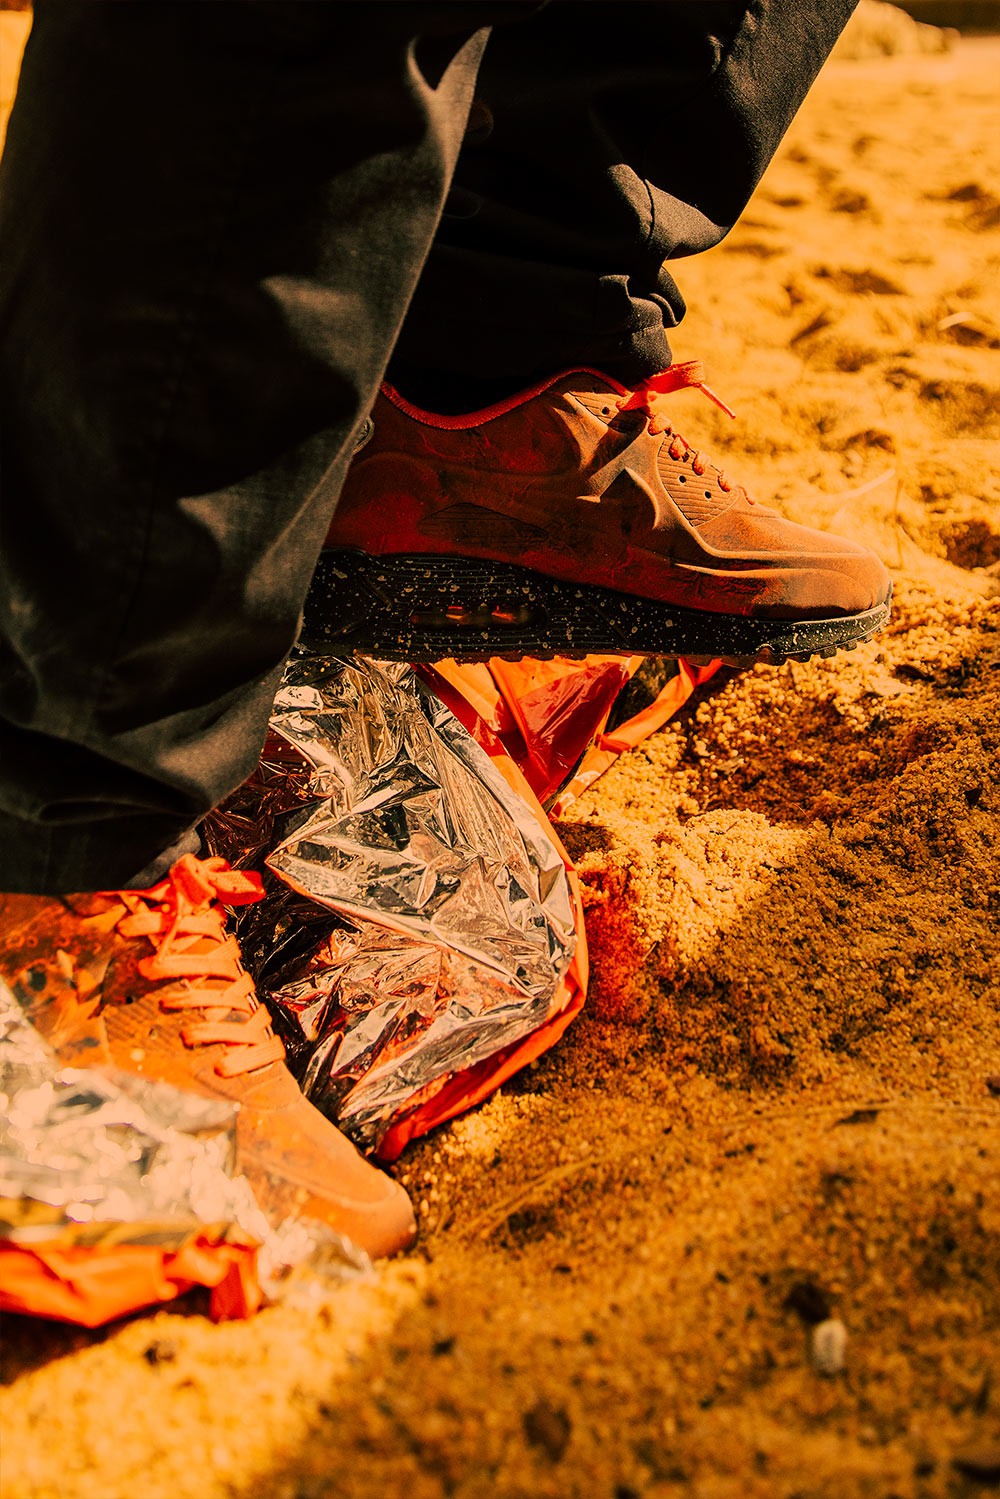 nike air max 90 mars landing on feet - photo #38